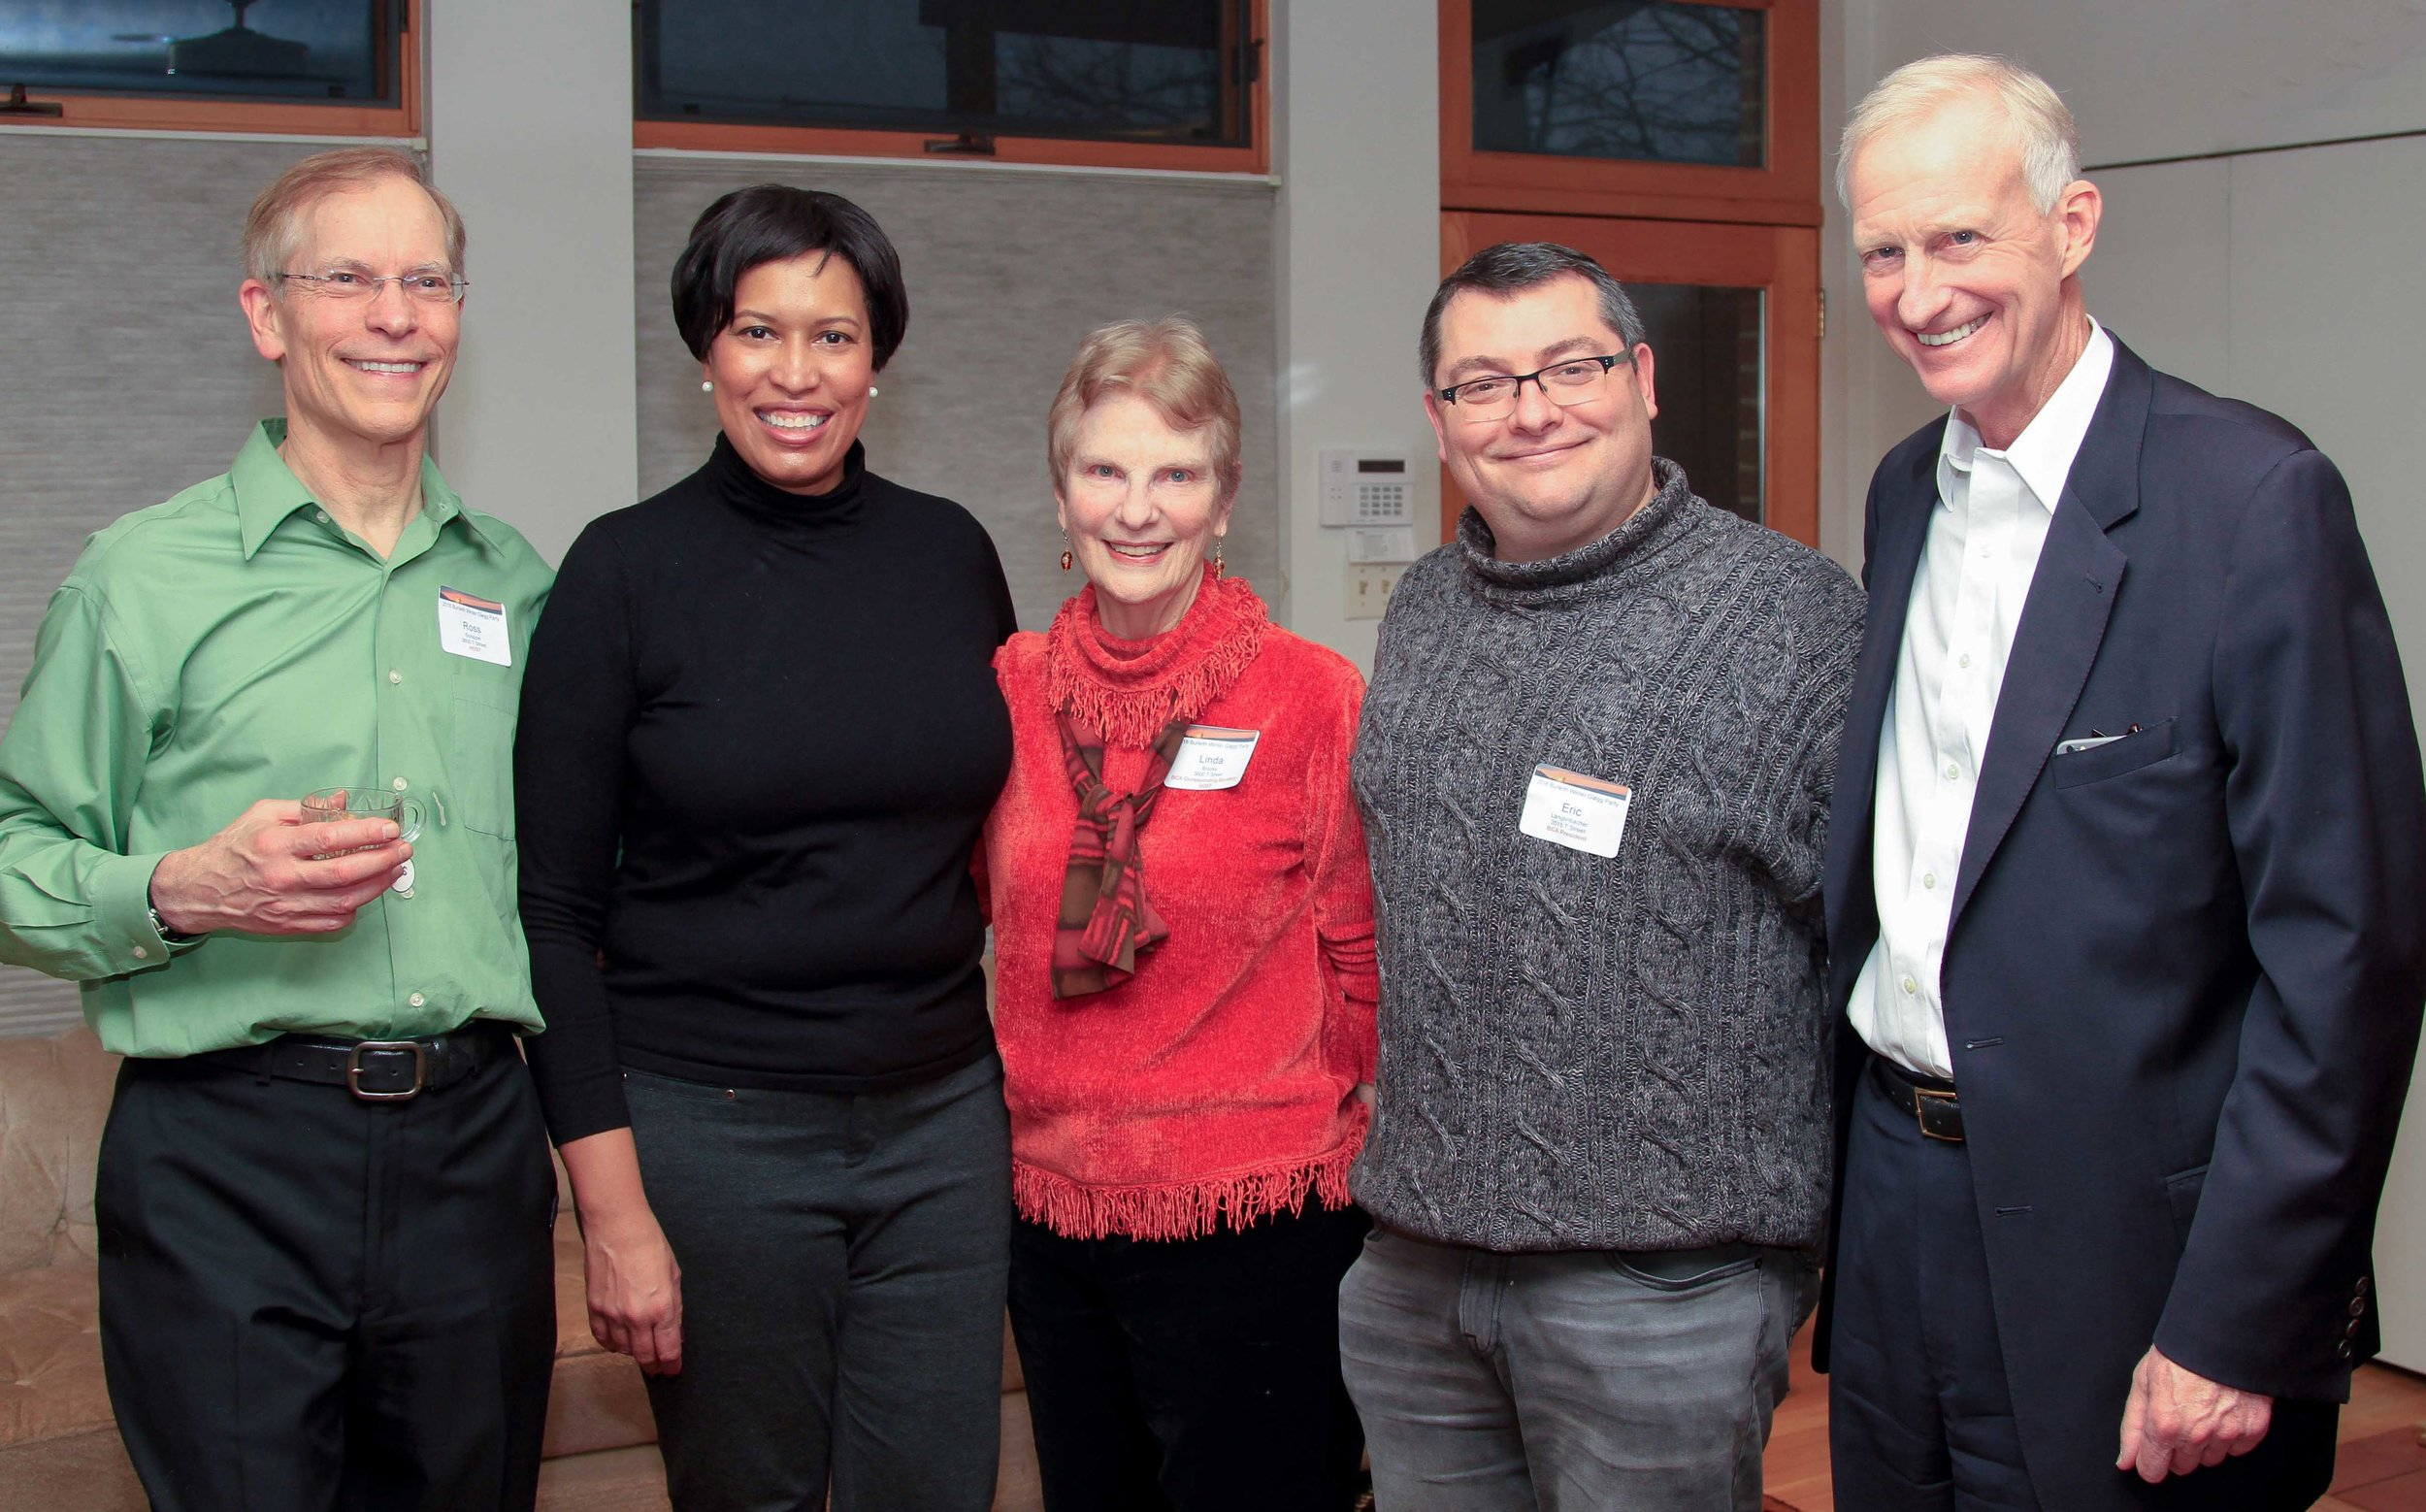 Hosts Ross Schipper and Linda Brooks flank Mayor Muriel Bowser and are joined by BCA president Eric Langenbacher and Ward 2 councilmember Jack Evans. Photos by Alex Frederick.